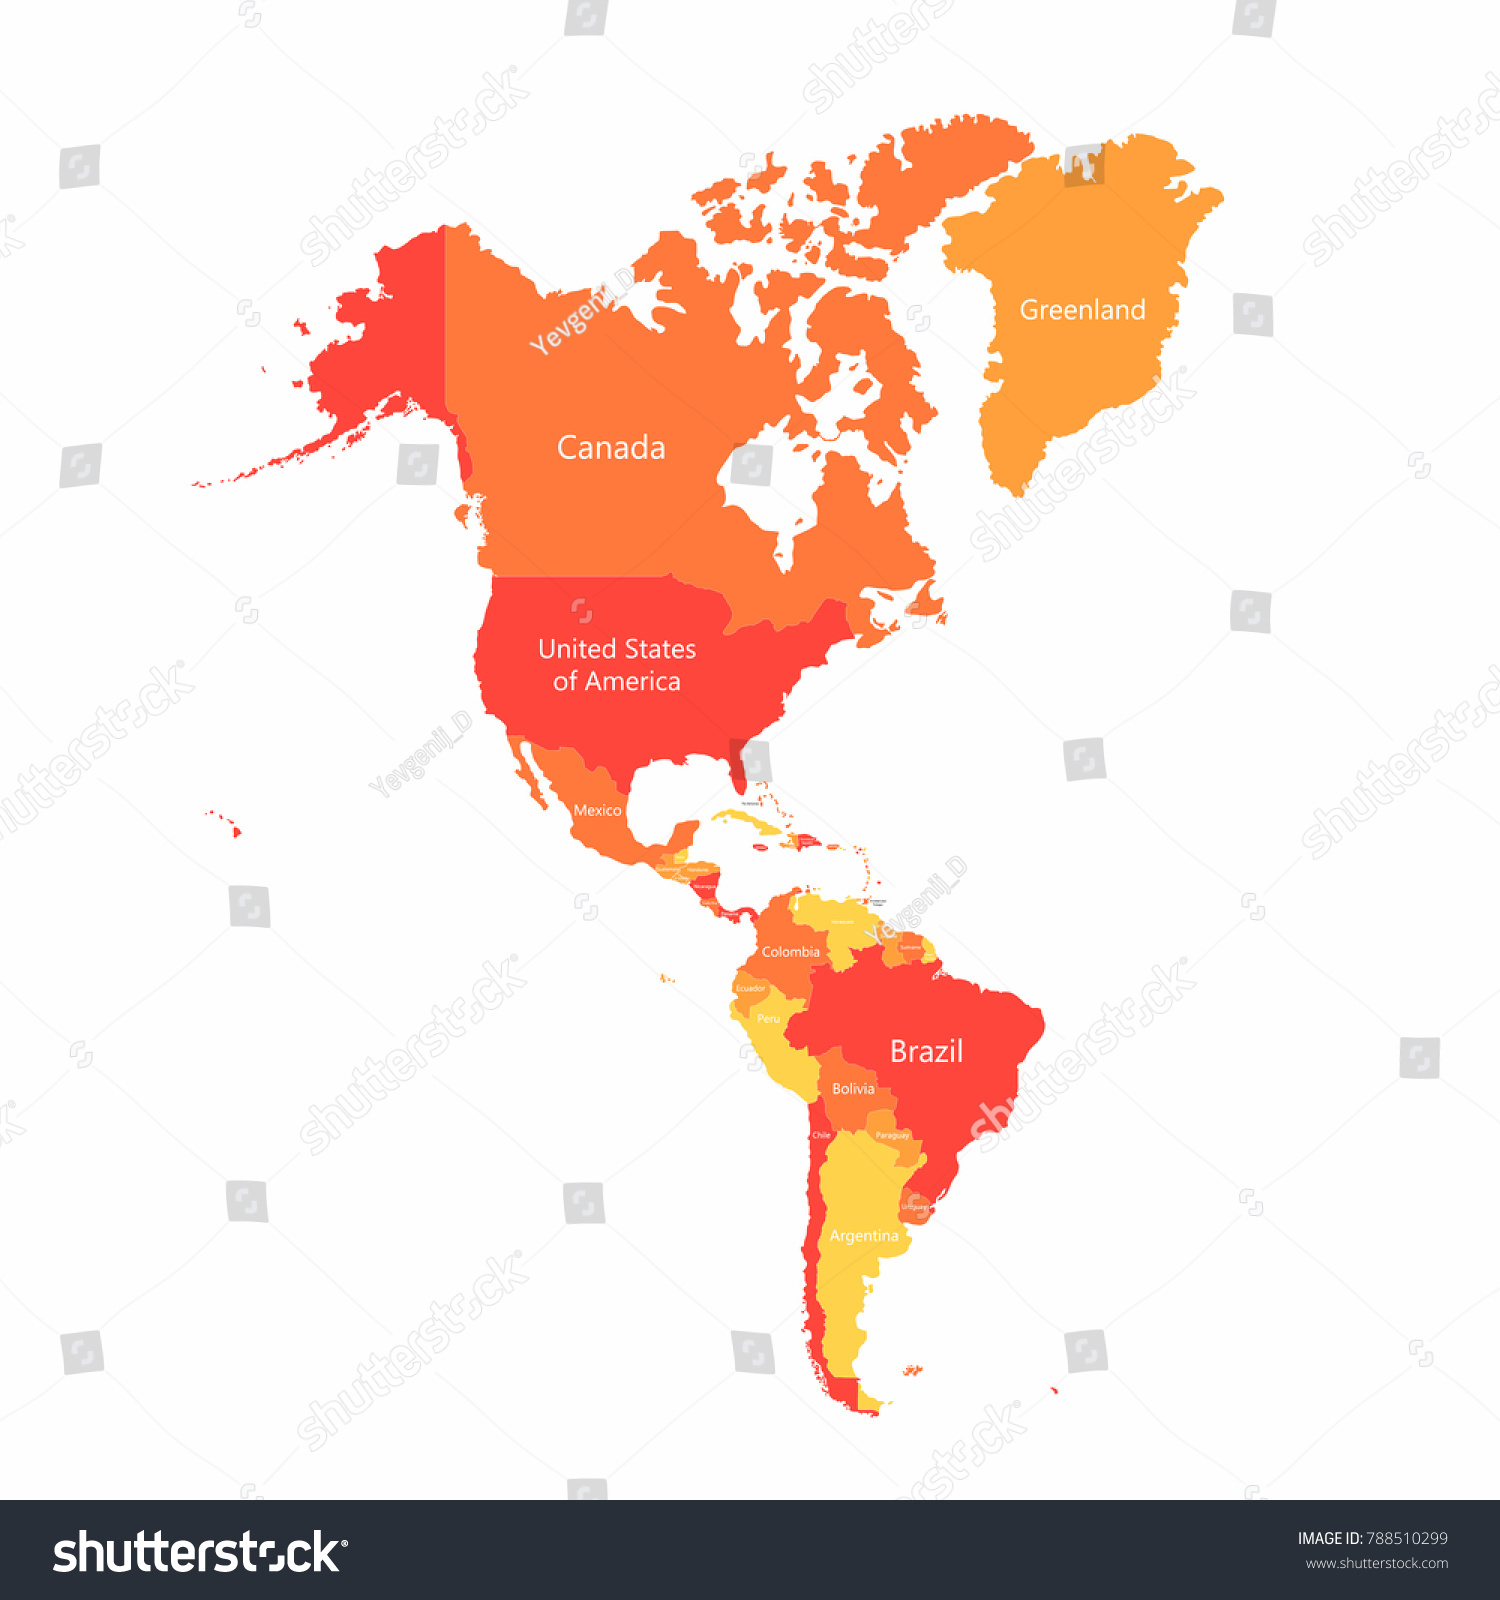 Vector South America North America Map Stock Vector (Royalty Free ...